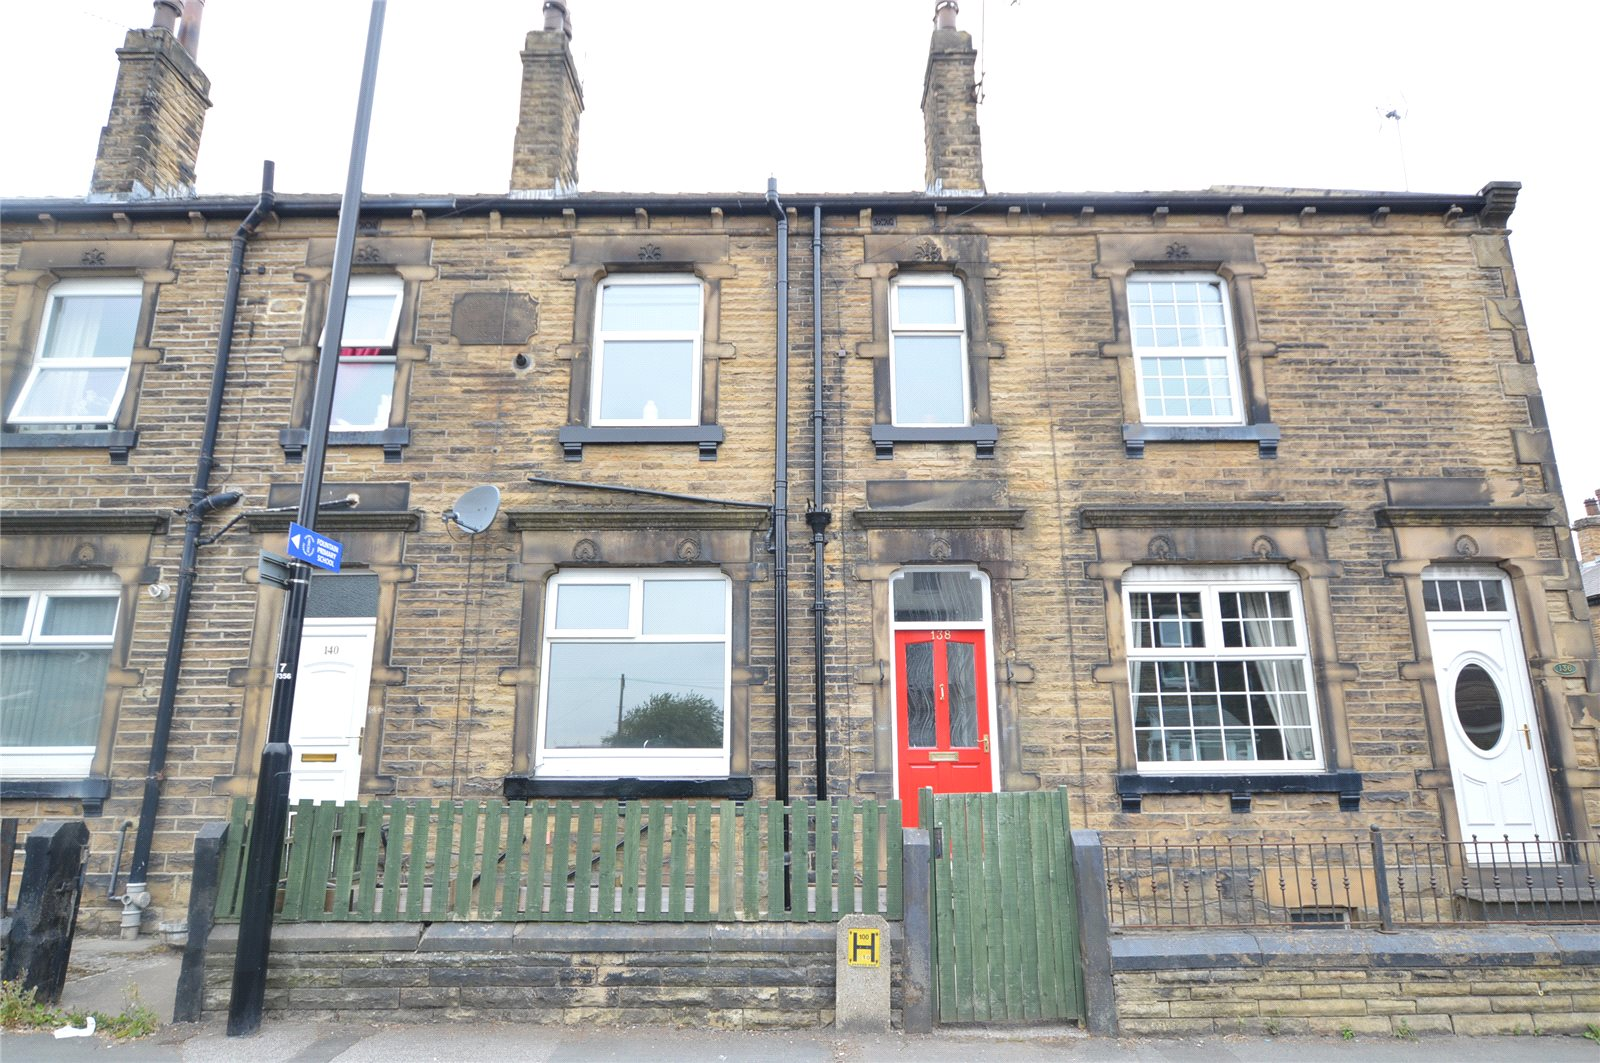 property for sale in Morley terraced house, red front door